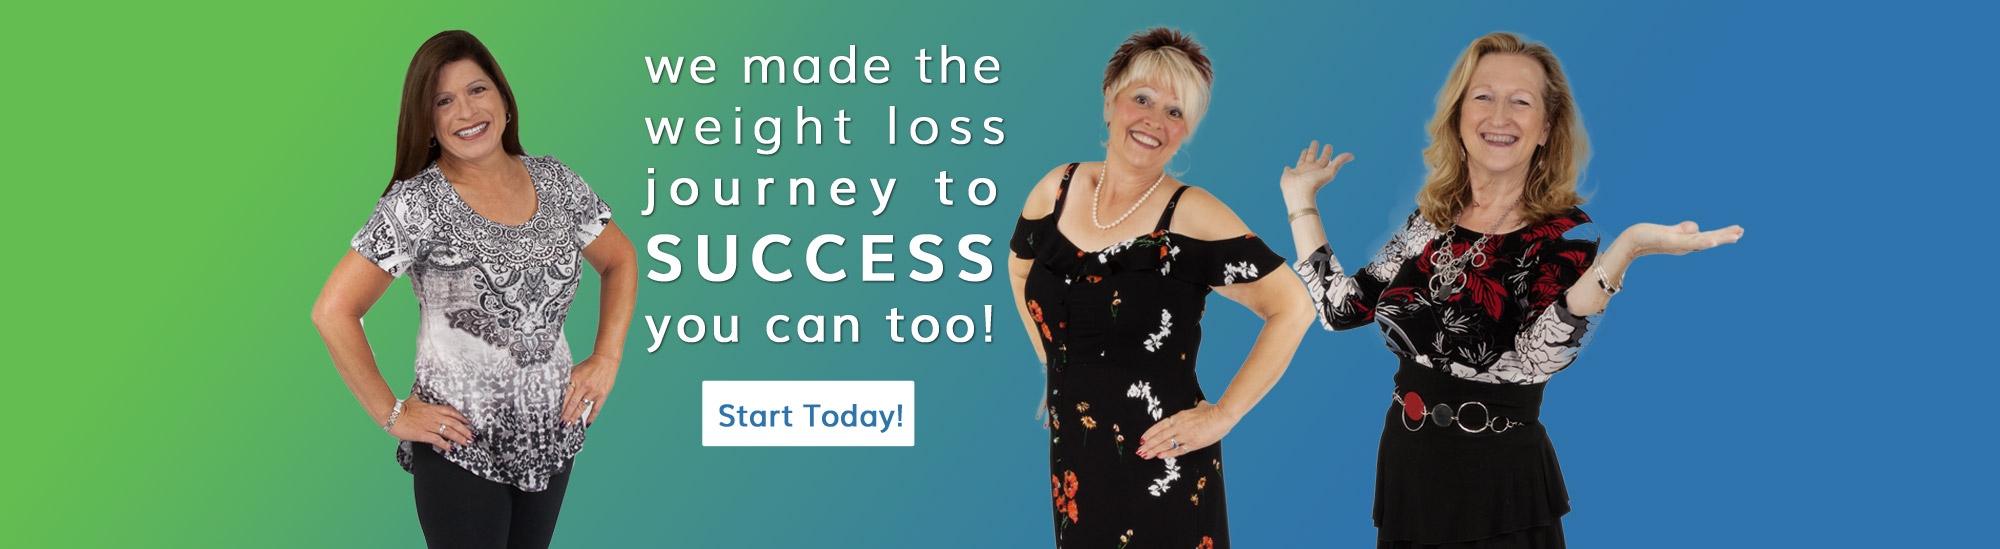 Nuyou Weight Loss and More success transformations image! Start your weight loss program today!